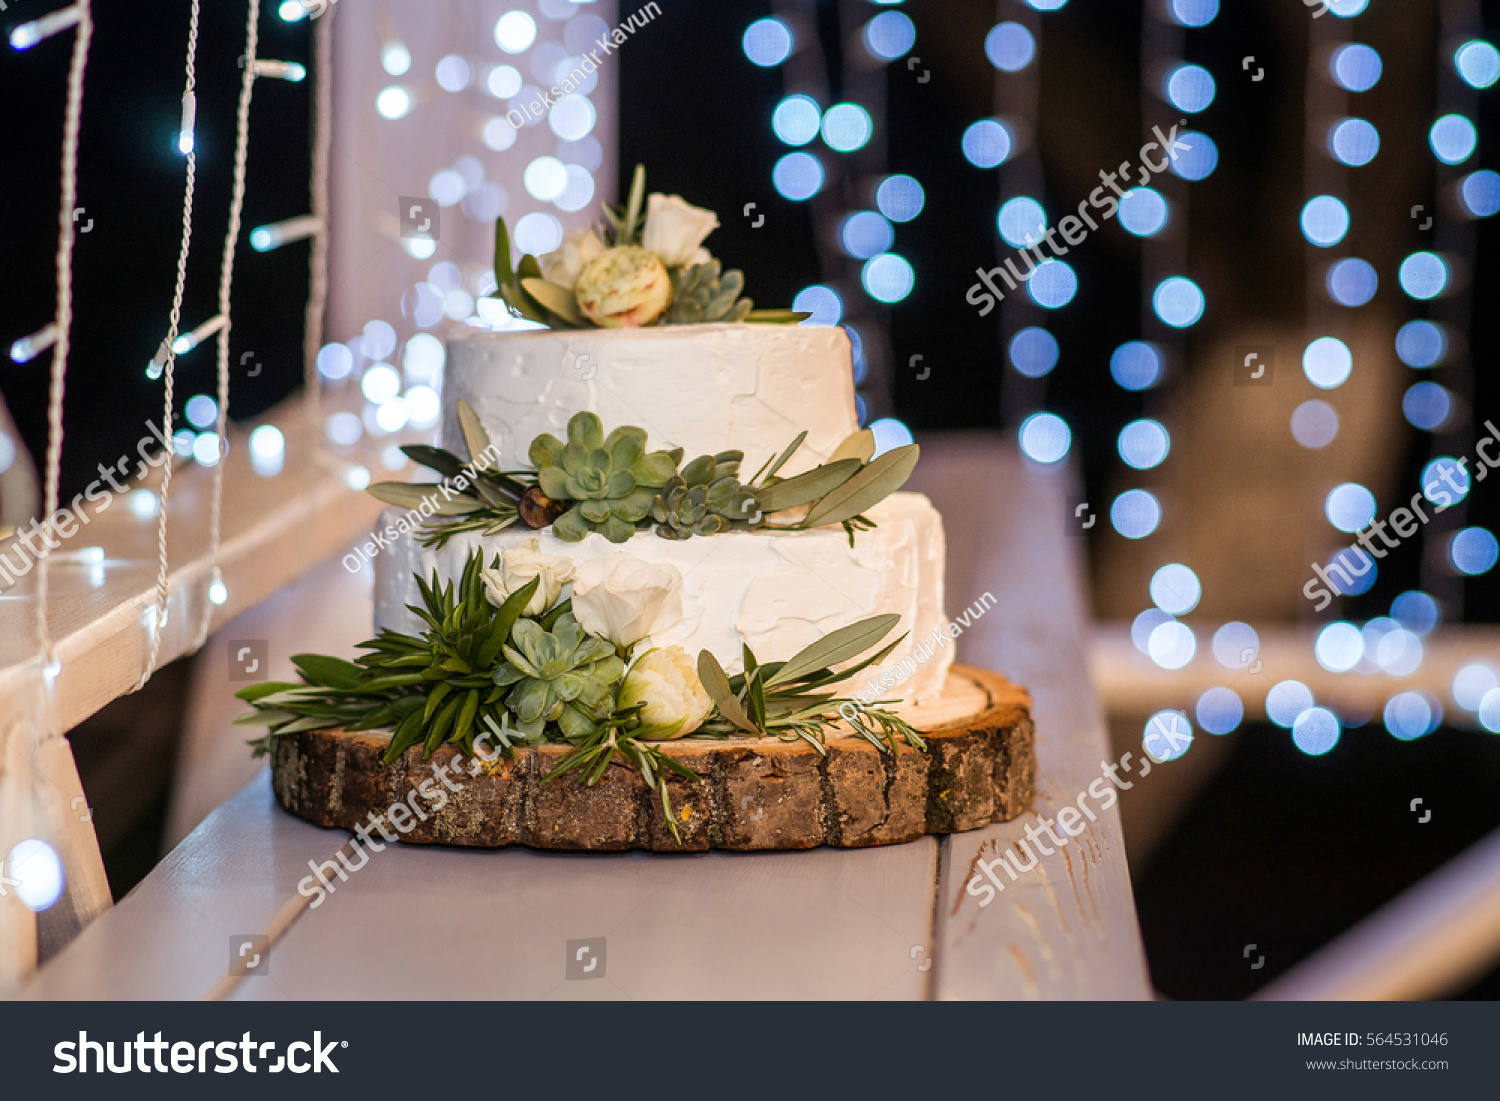 Wedding Cake Rustic Style Succulents Outdoor Stock Photo Edit Now 564531046